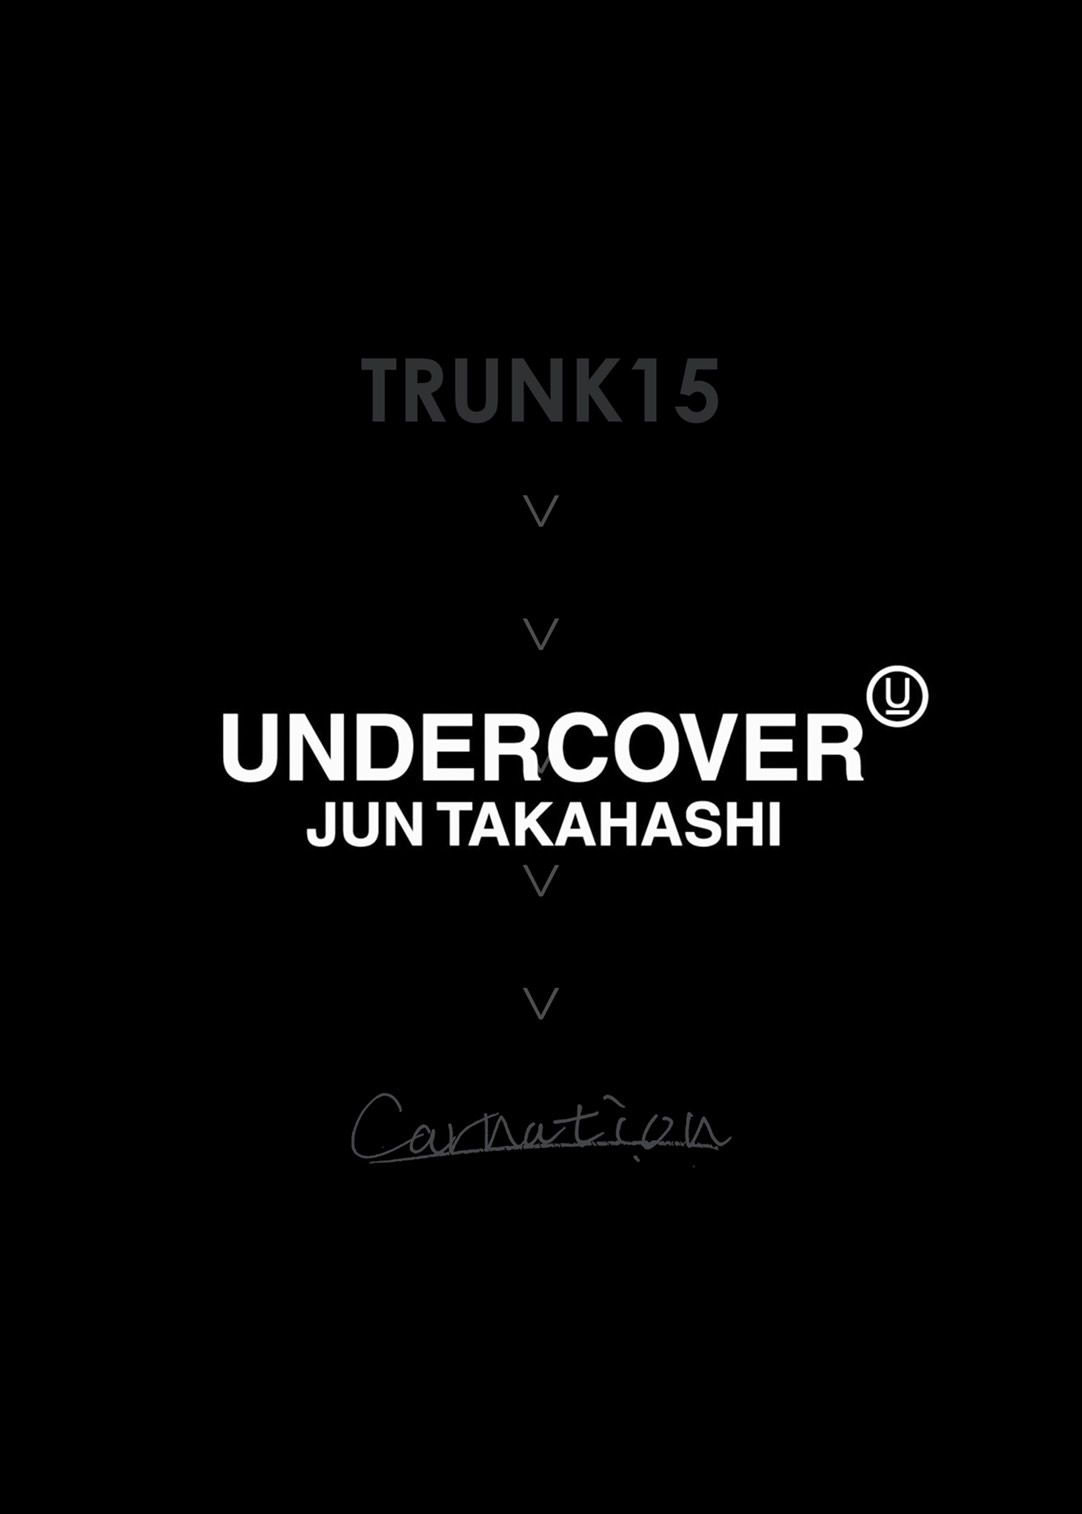 UNDERCOVER 2020 Autumn & Winter Collection